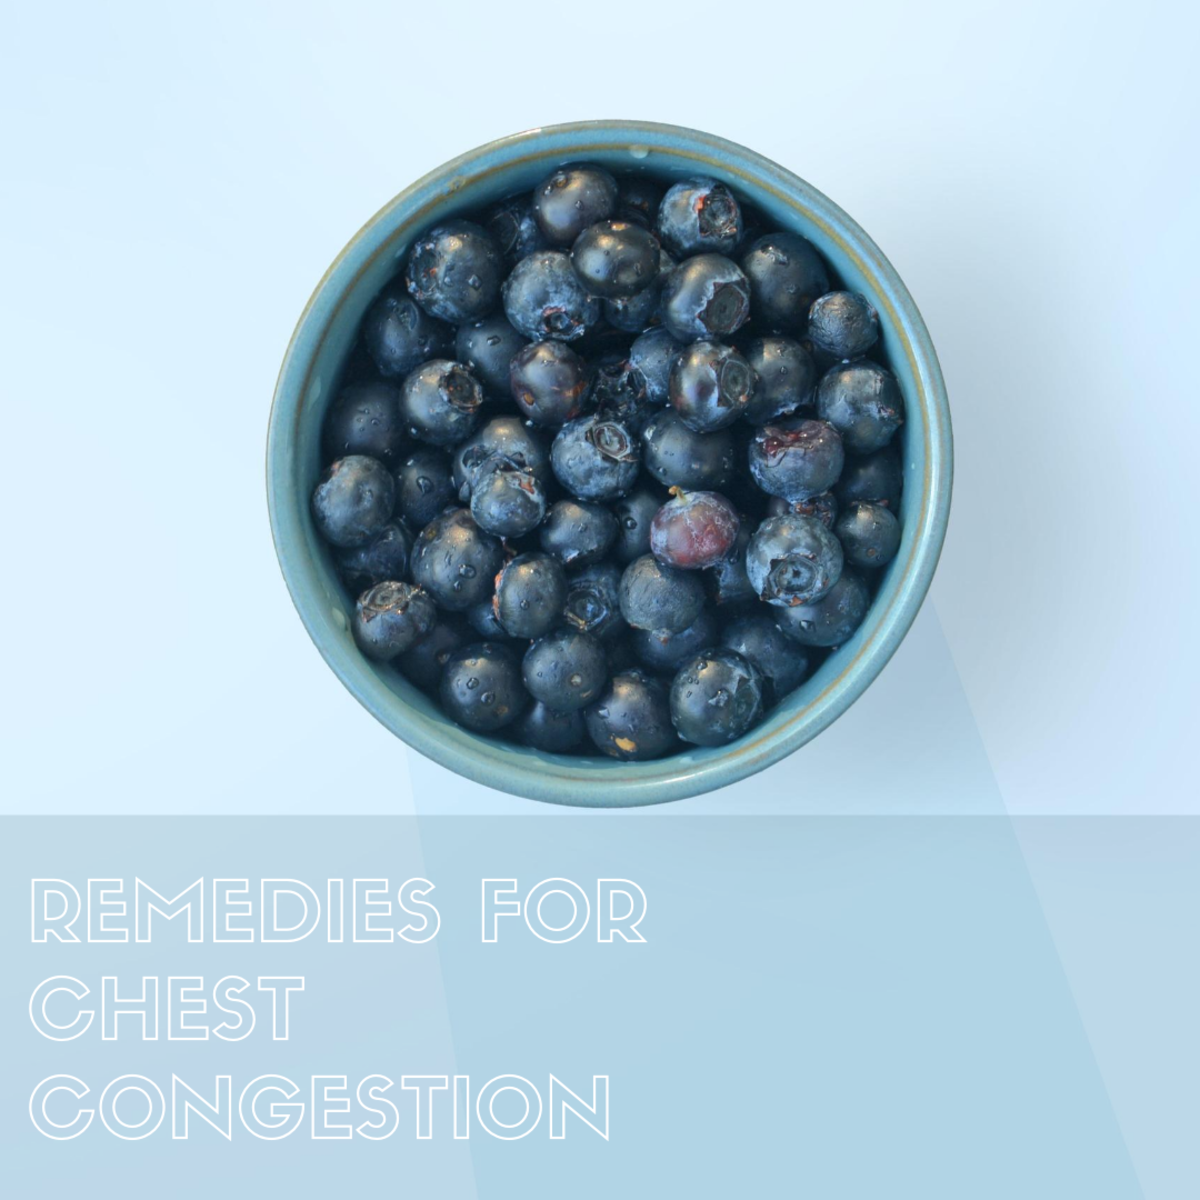 Suffer from chest congestion? These remedies can help.